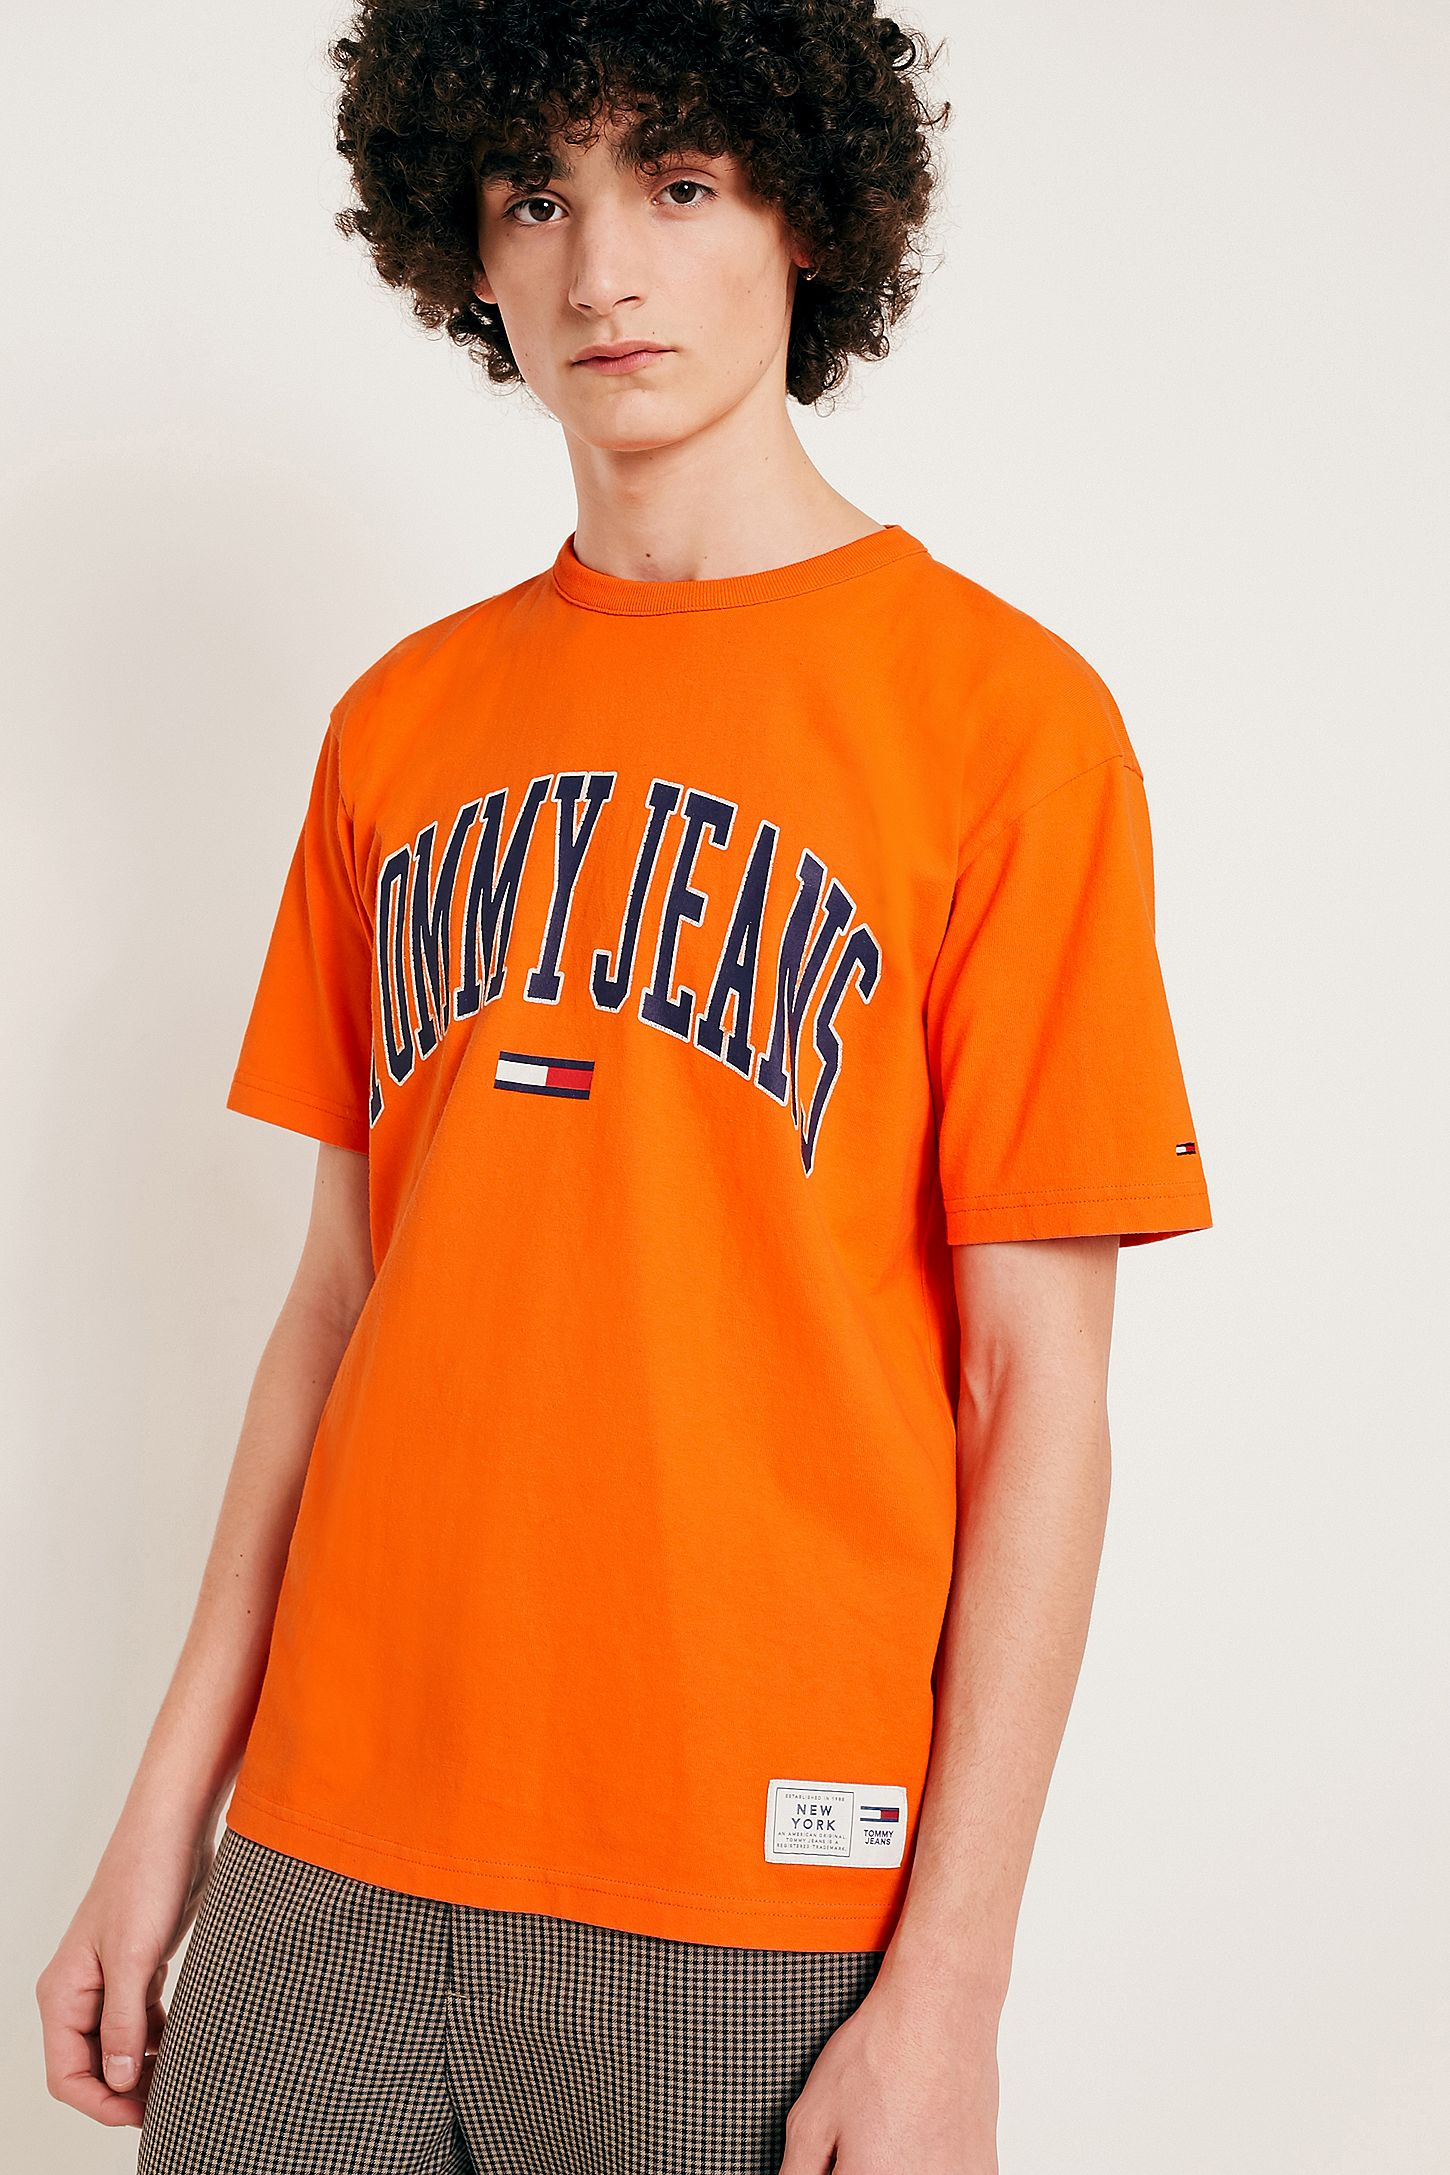 81ac8fa2 Tommy Jeans Collegiate Orange T-Shirt | Urban Outfitters UK